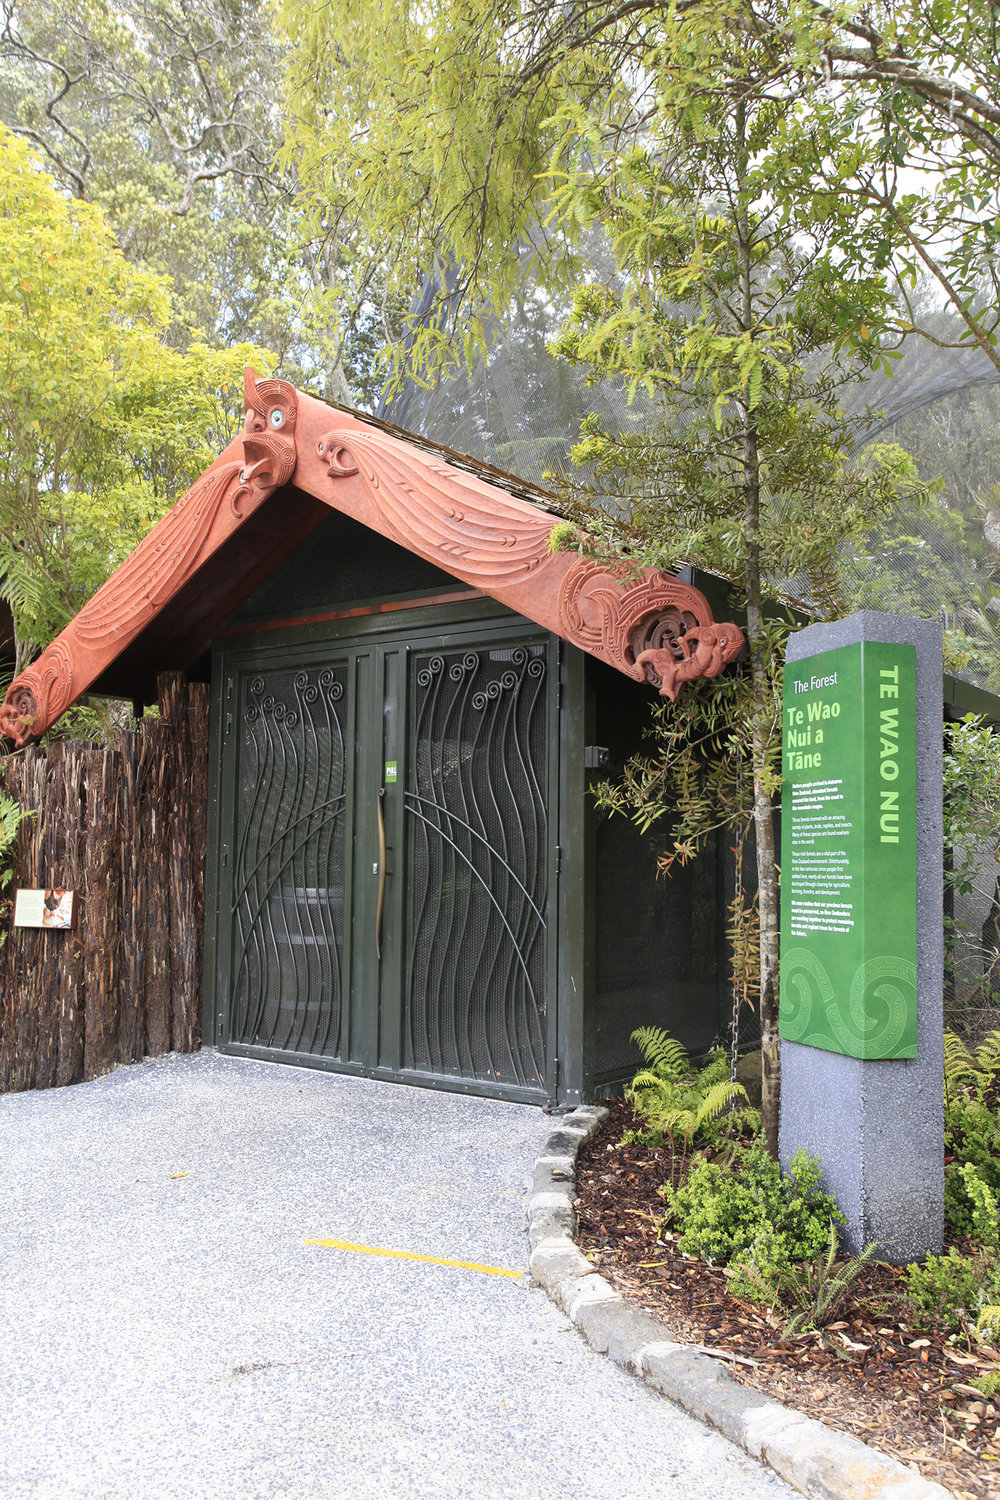 Entry to the forest Te Wao nui a Tane WEB.jpg